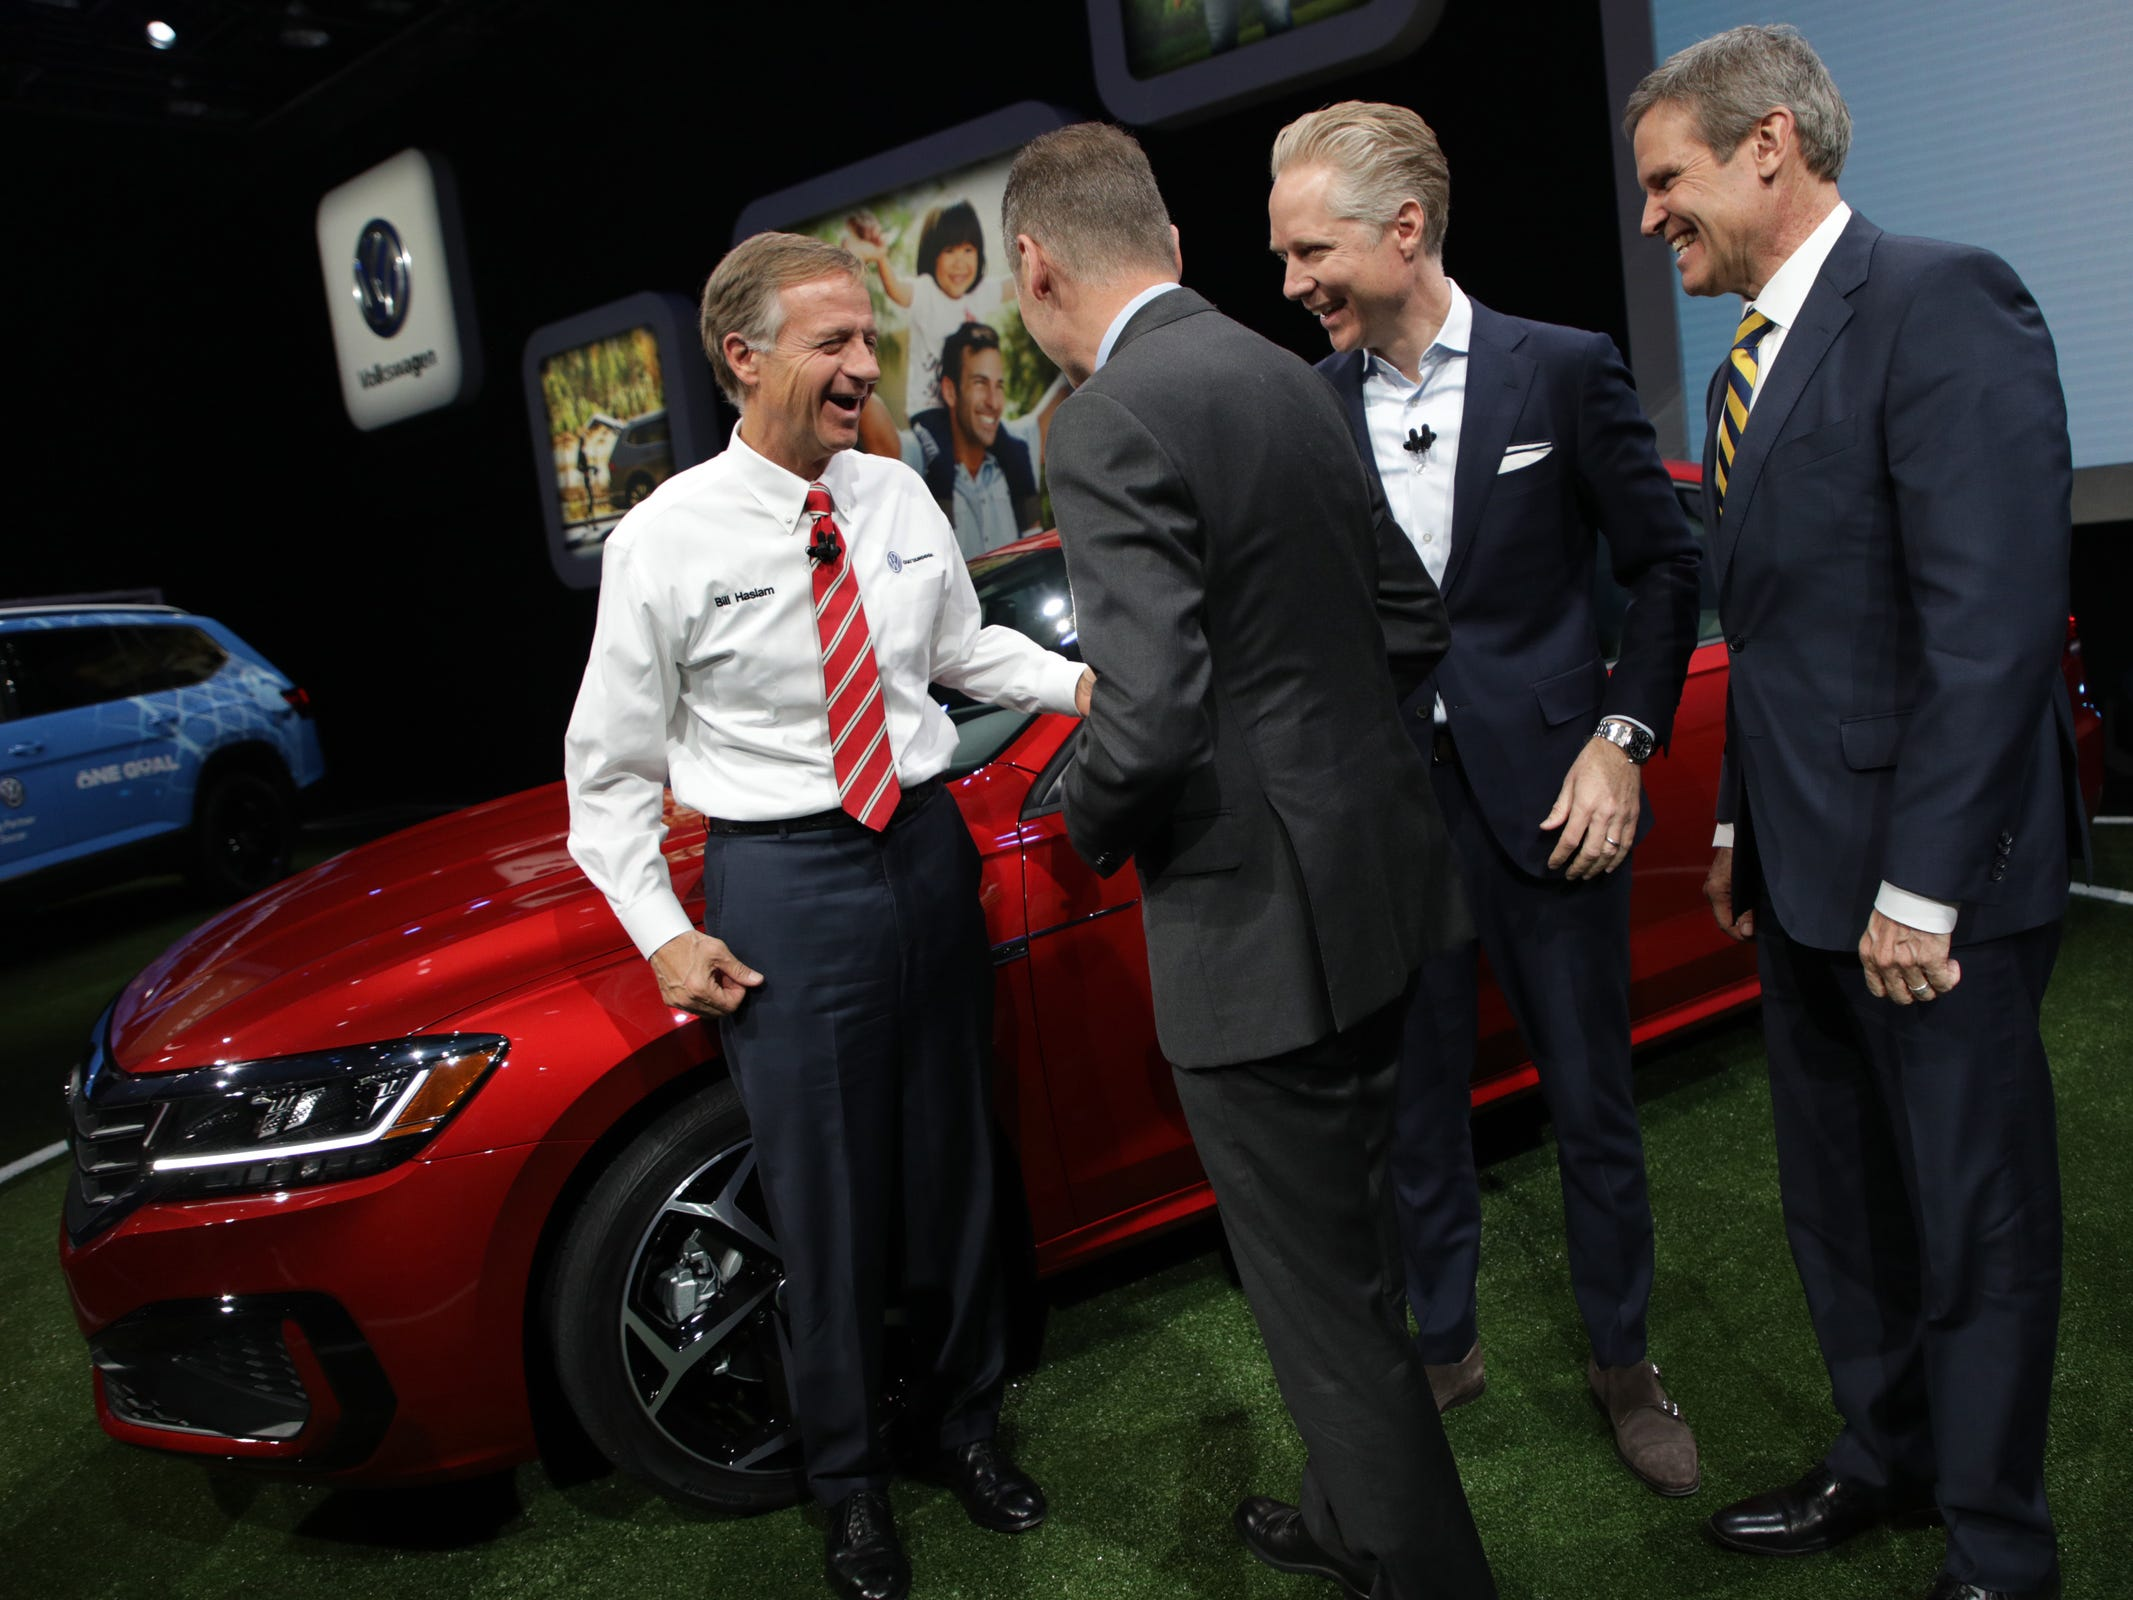 Bill Haslam, Governor of Tennessee, from left Dr. Herbert Diess, ceo of Volkswagen, Scott Keogh, ceo and president of Volkswagen Group of America and Tennessee Governor elect Bill Lee talk before posing for a photograph in front of  the 2020 Volkswagen Passat at the 2019 North American International Auto Show held at Cobo Center in downtown Detroit on Monday, Jan. 14, 2019.